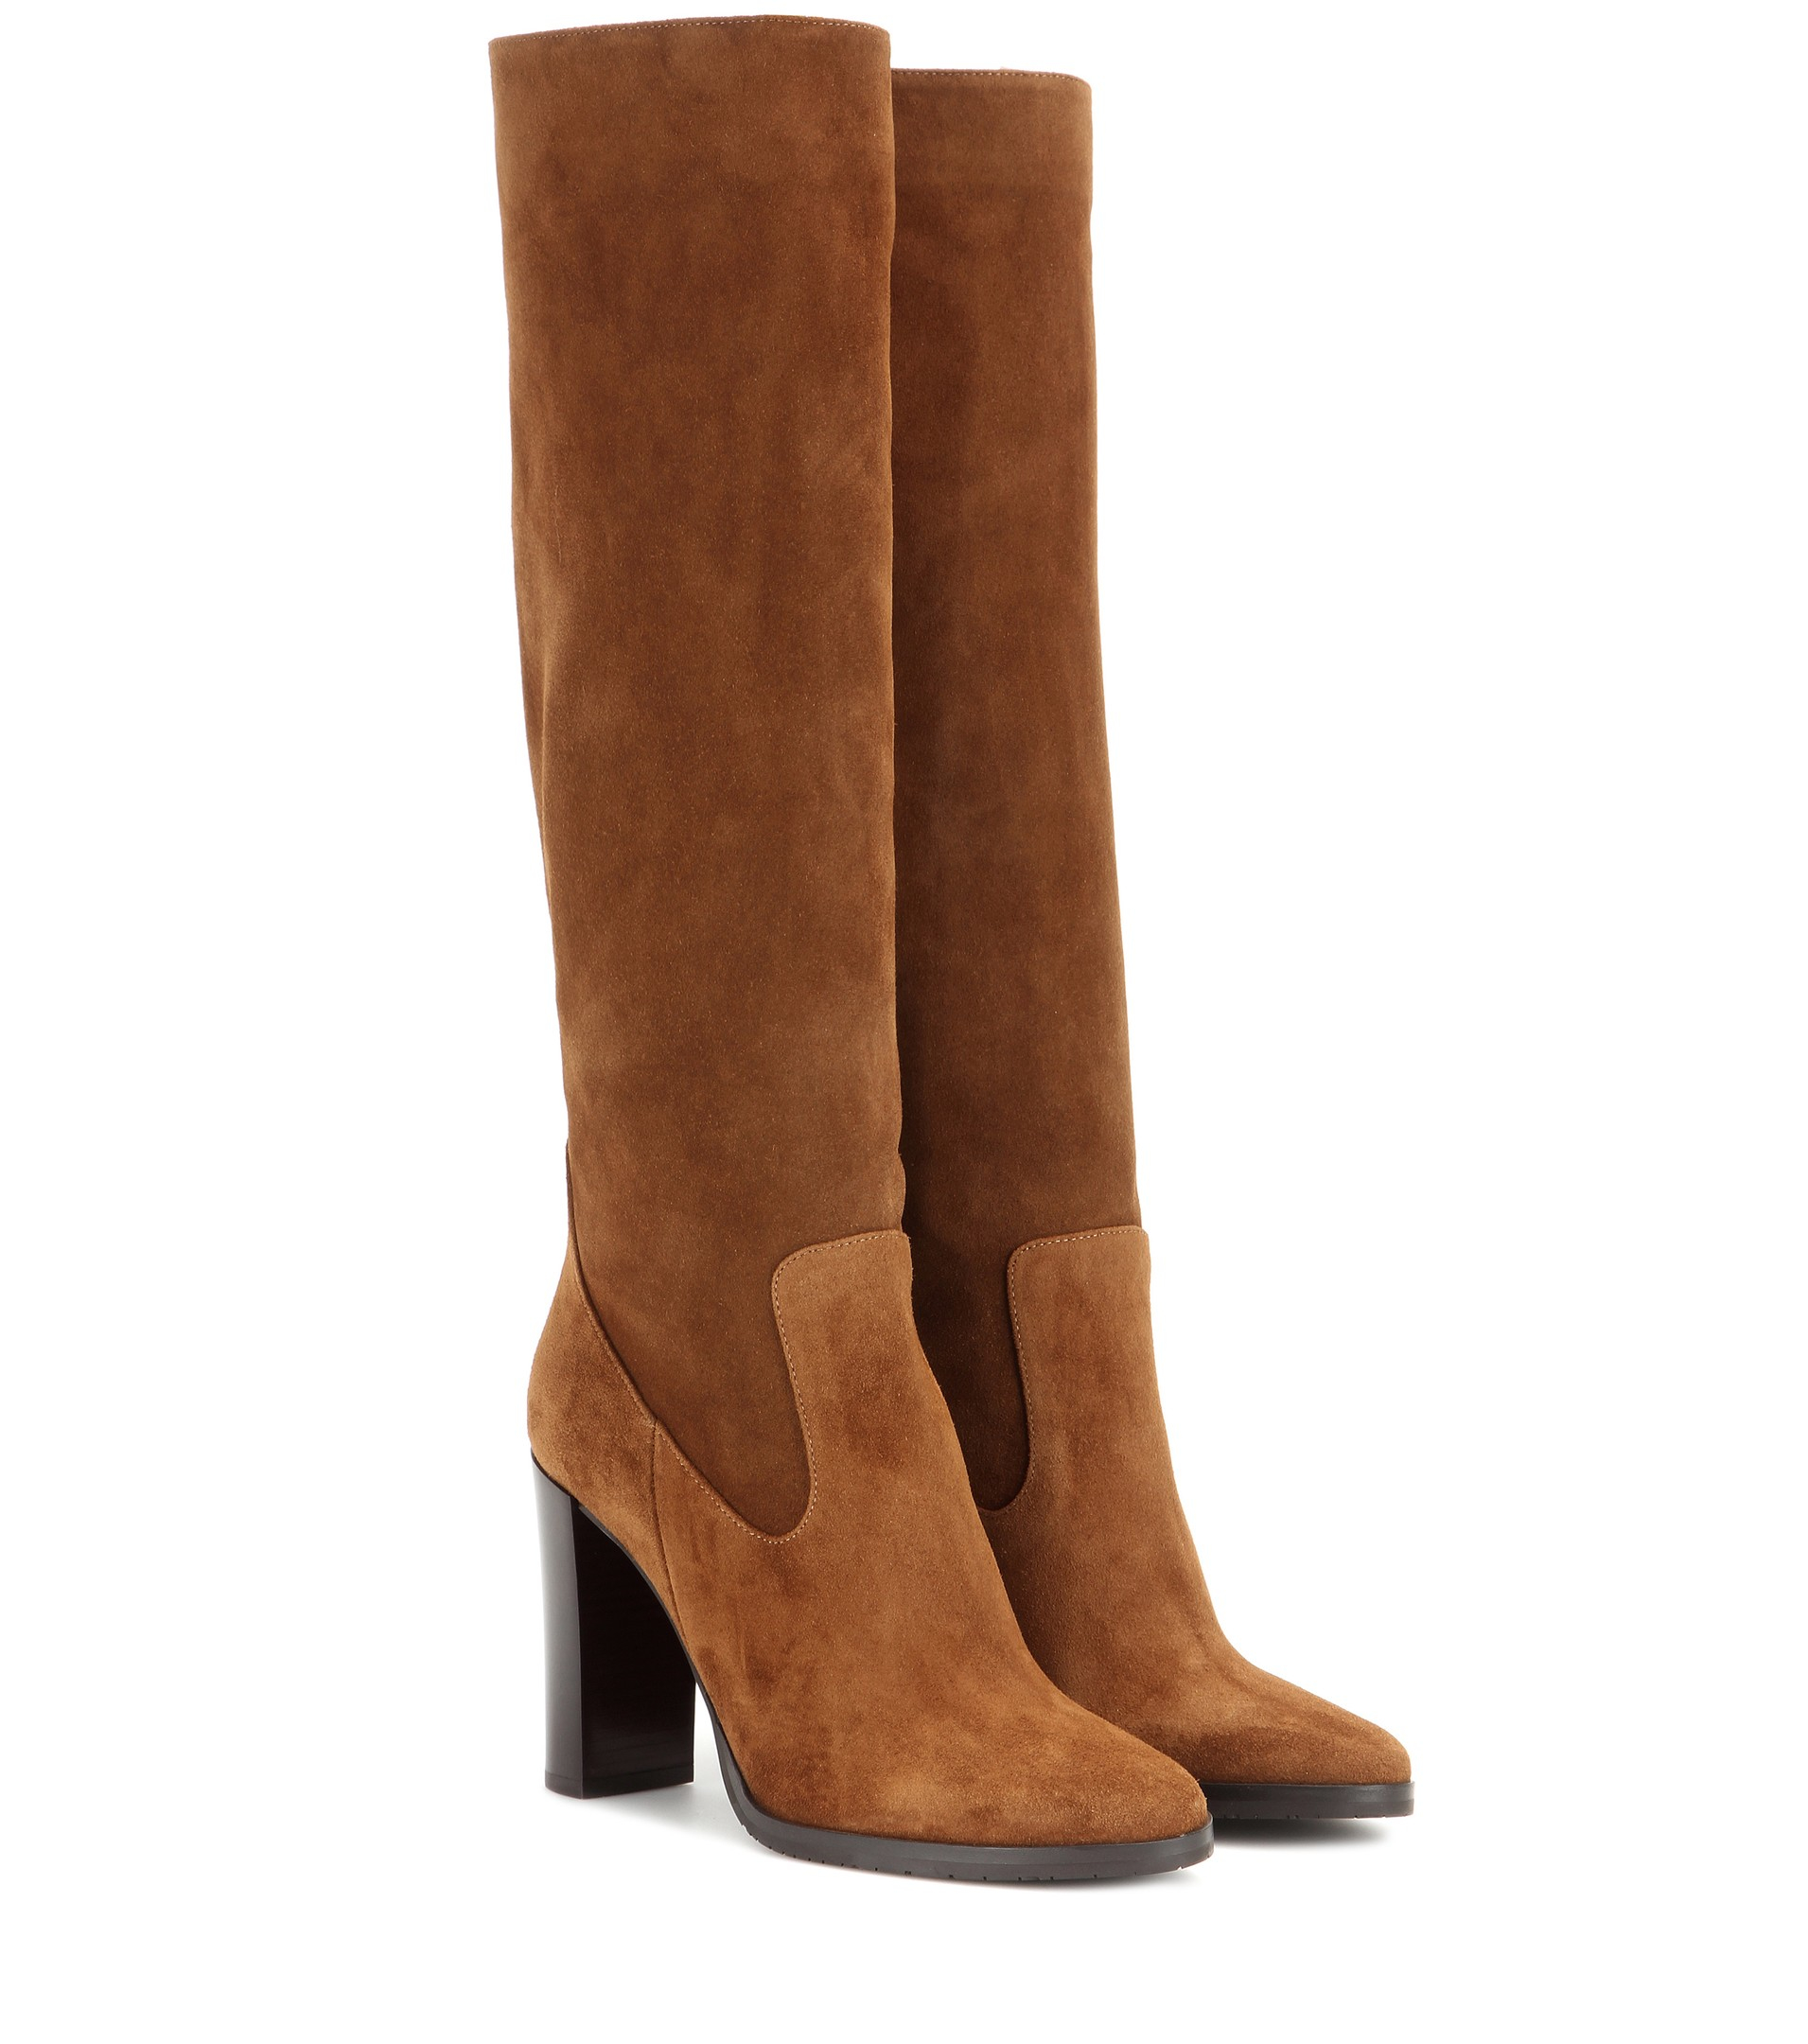 bf3dbfd9154 Jimmy Choo Honor 95 Suede Knee-High Boots in Brown - Lyst